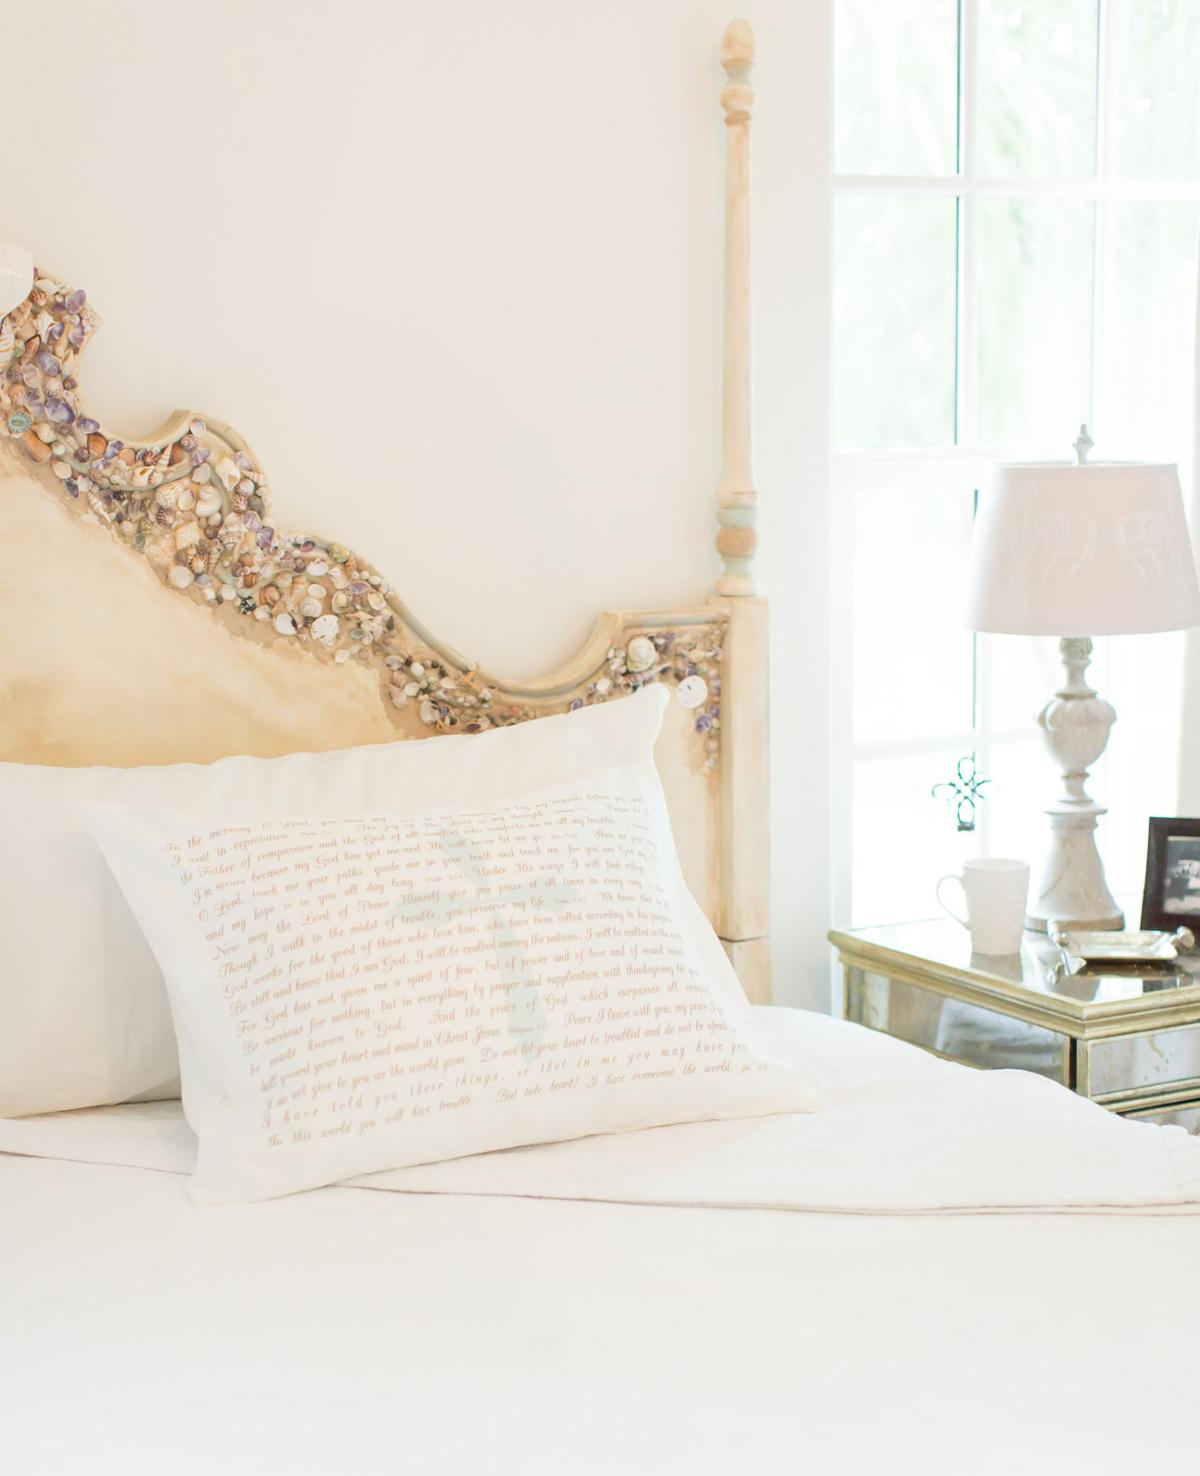 View More: http://lindsaystewartphotography.pass.us/pg-va-house